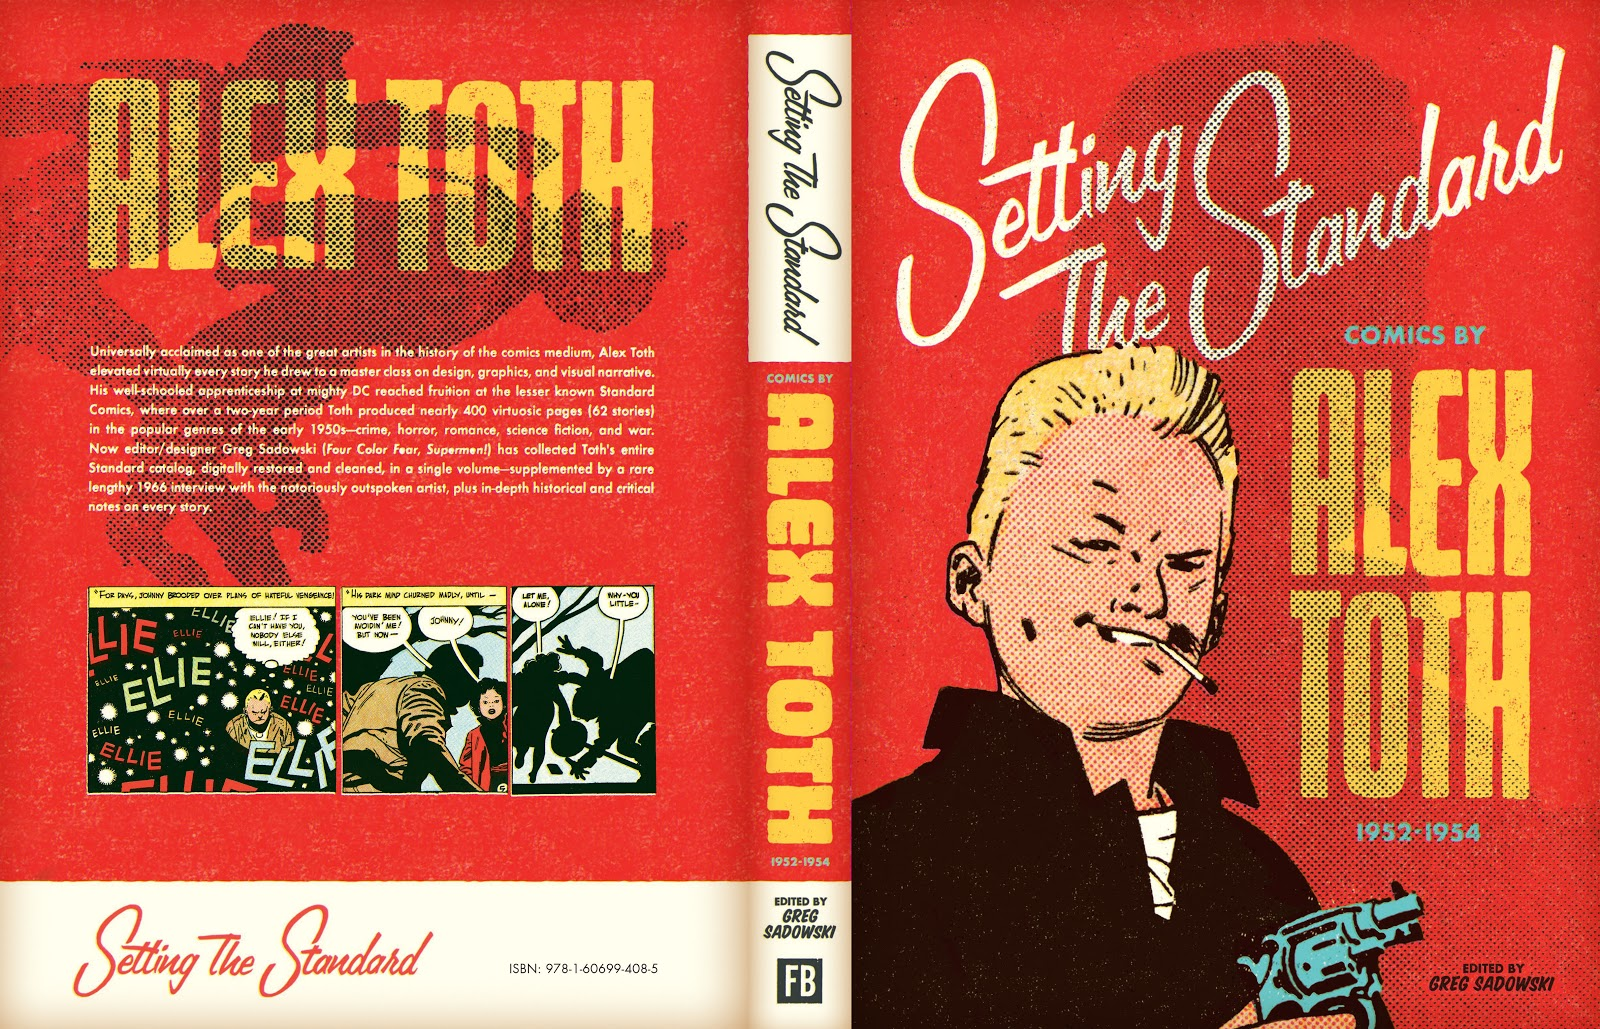 Read online Setting the Standard: Comics by Alex Toth 1952-1954 comic -  Issue # TPB (Part 4) - 134